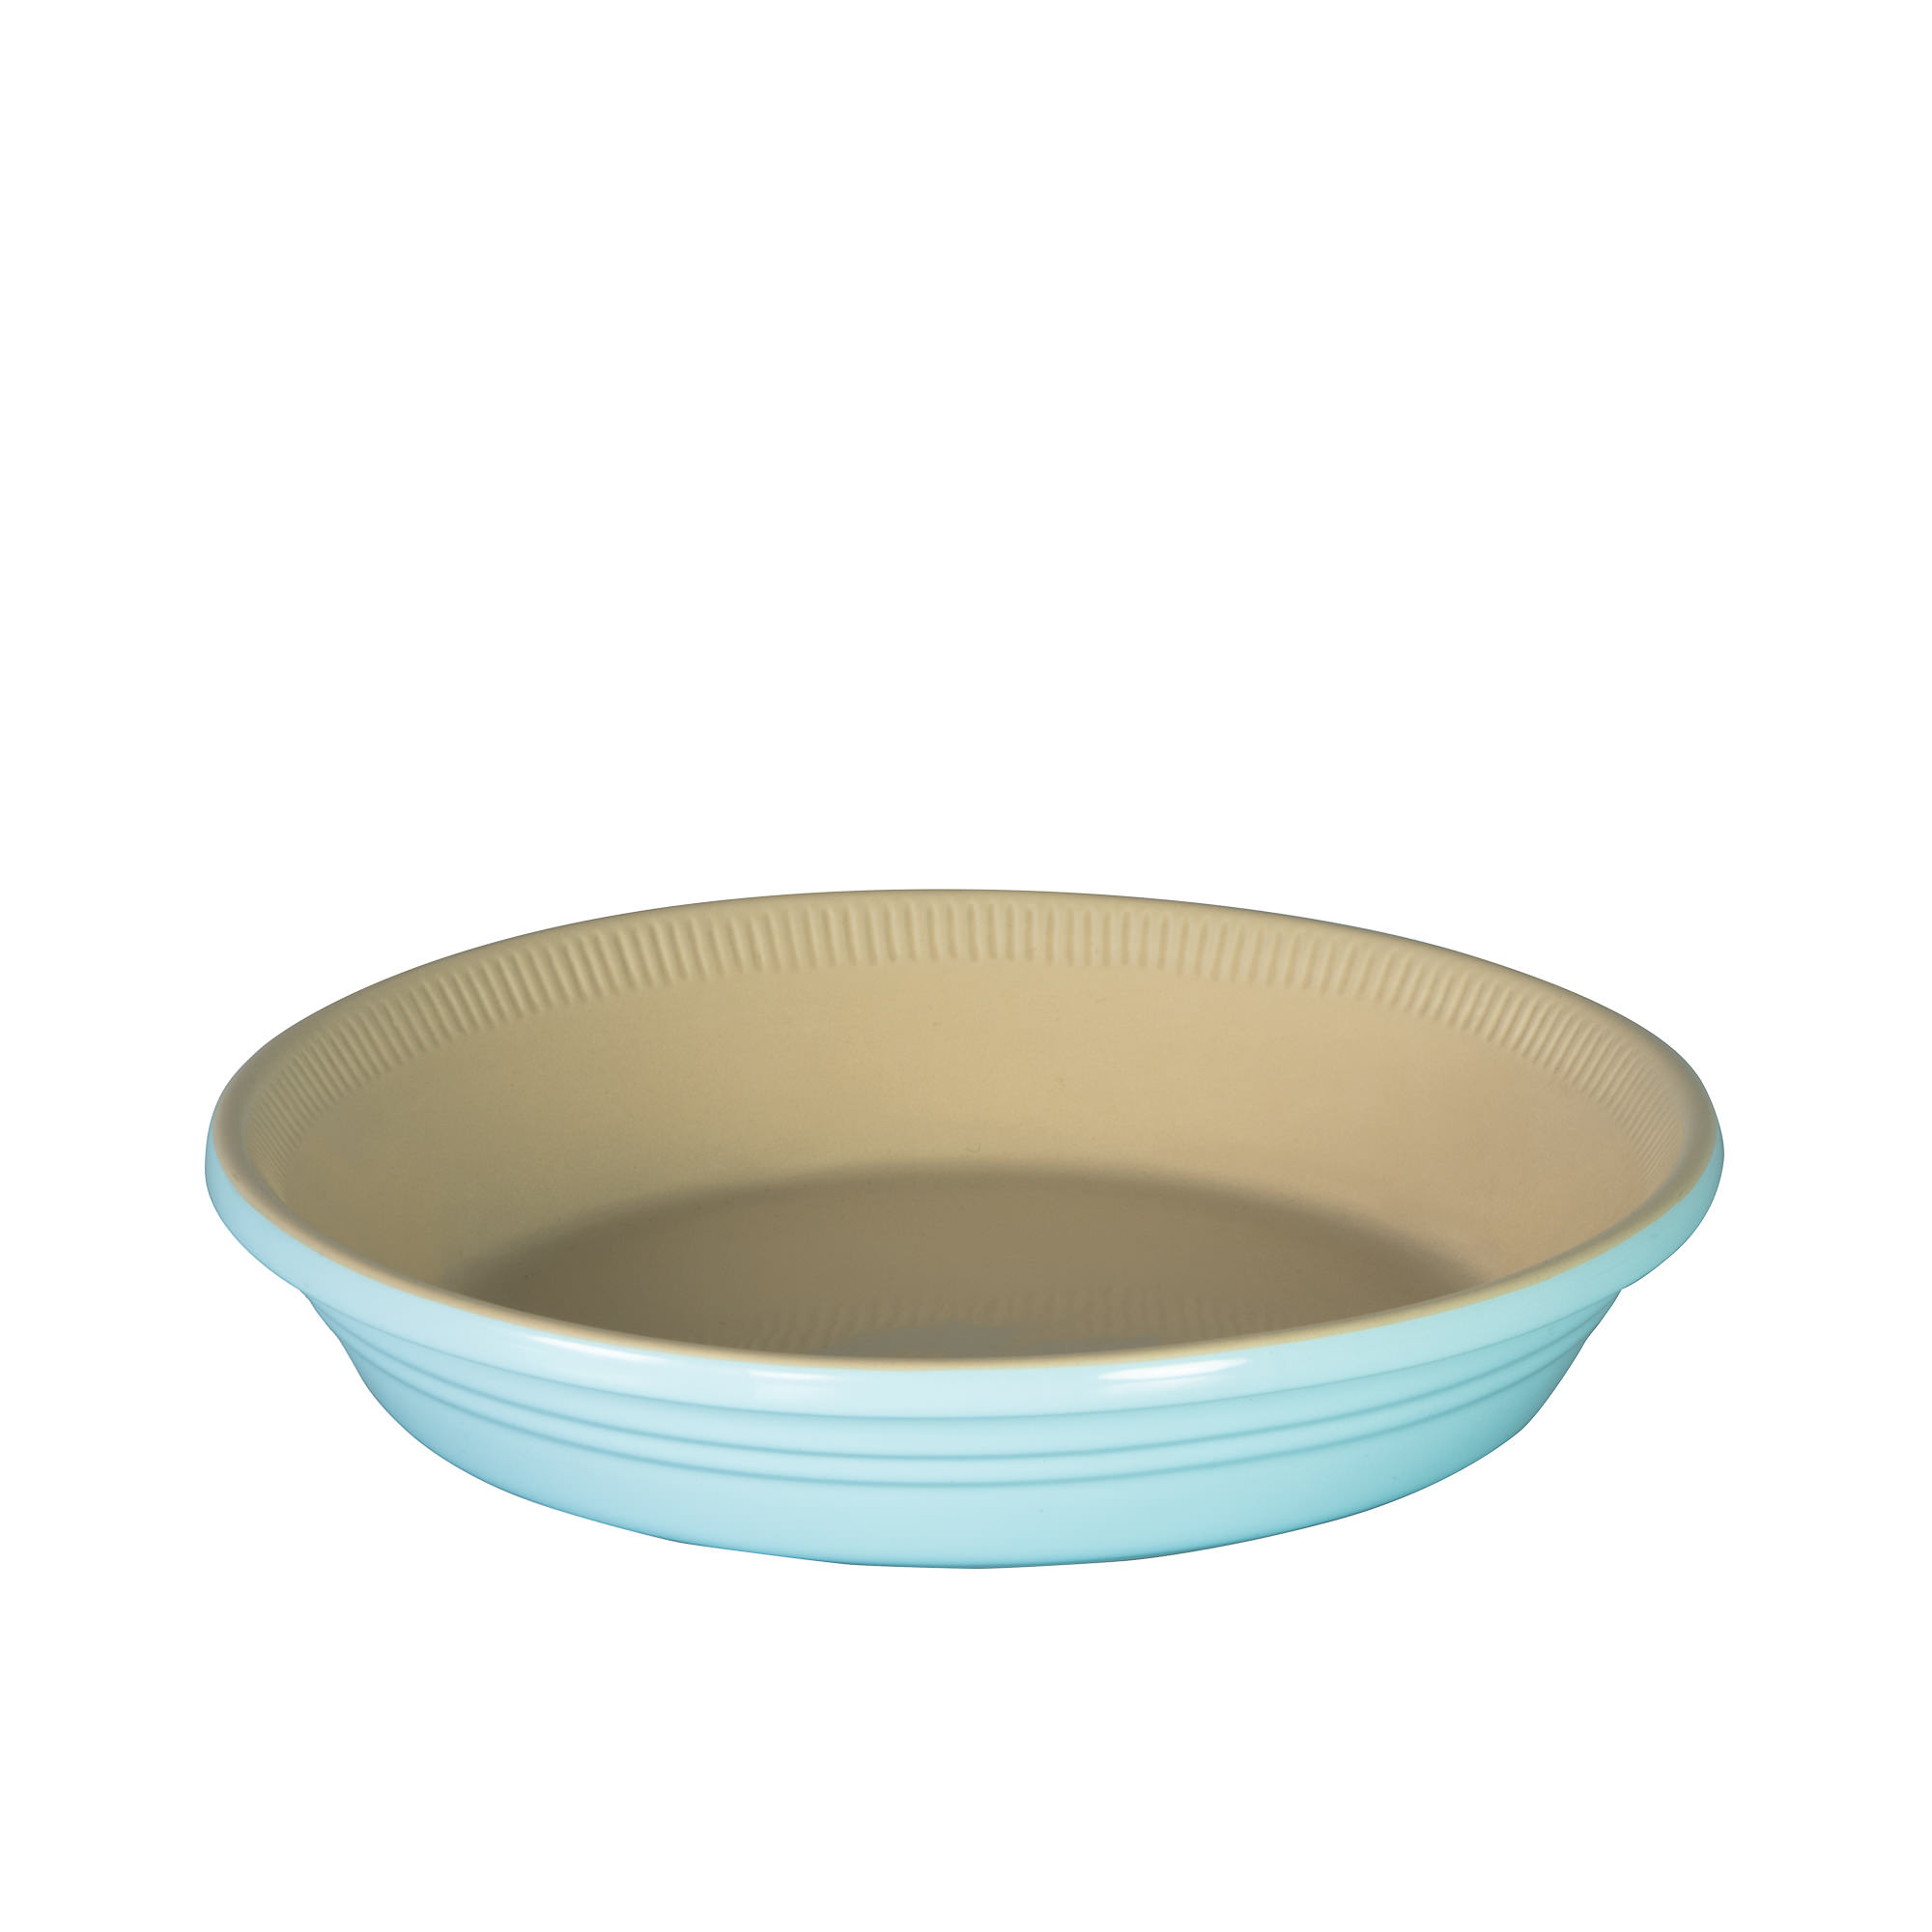 Chasseur La Cuisson Pie Dish 25cm Duck Egg Blue